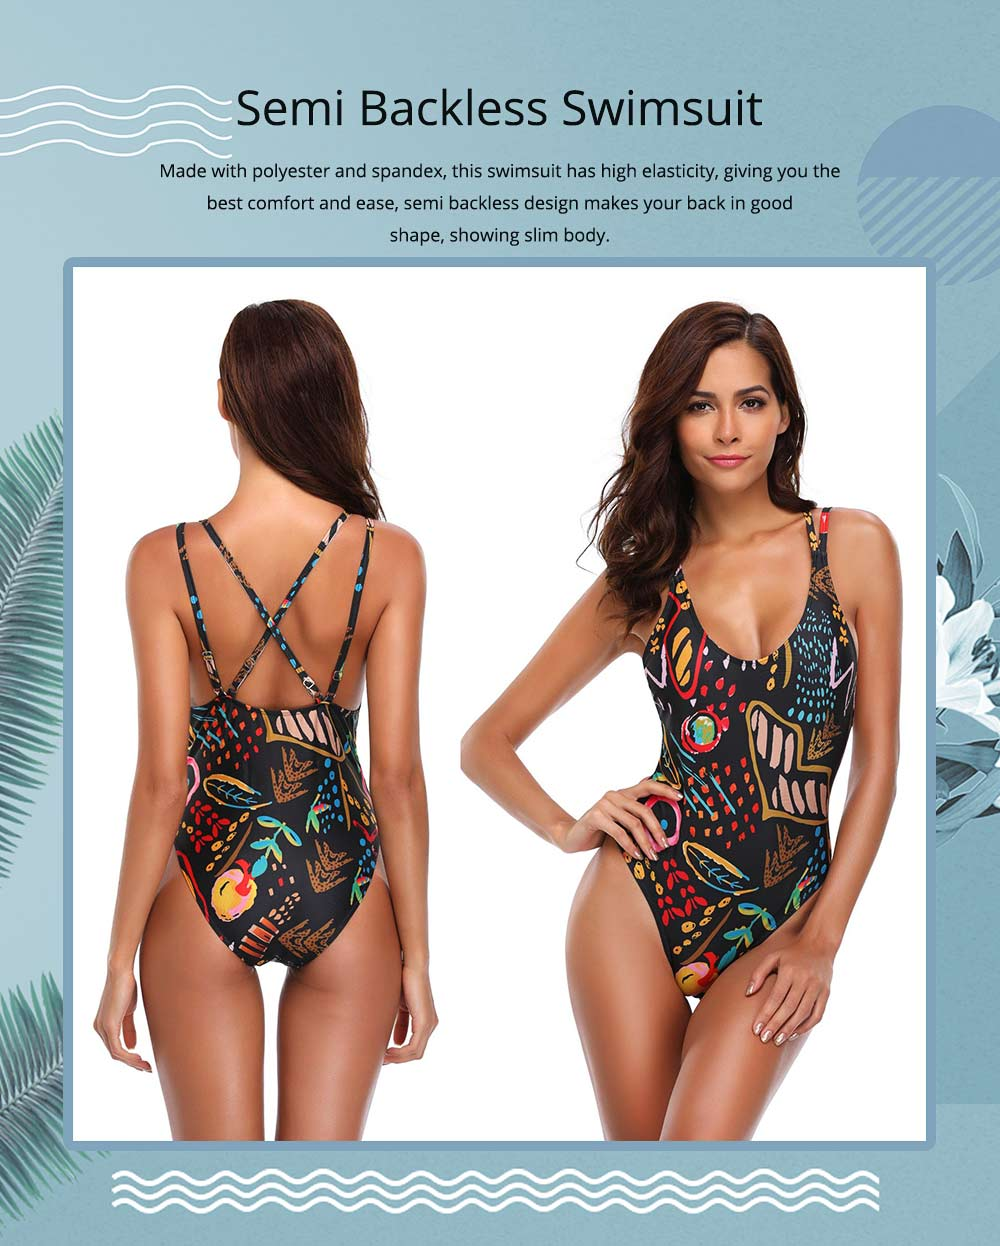 Women One-piece Bathing Suit, Semi Backless Swimsuit with Two Piece Shoulder Strap Swimwear 0